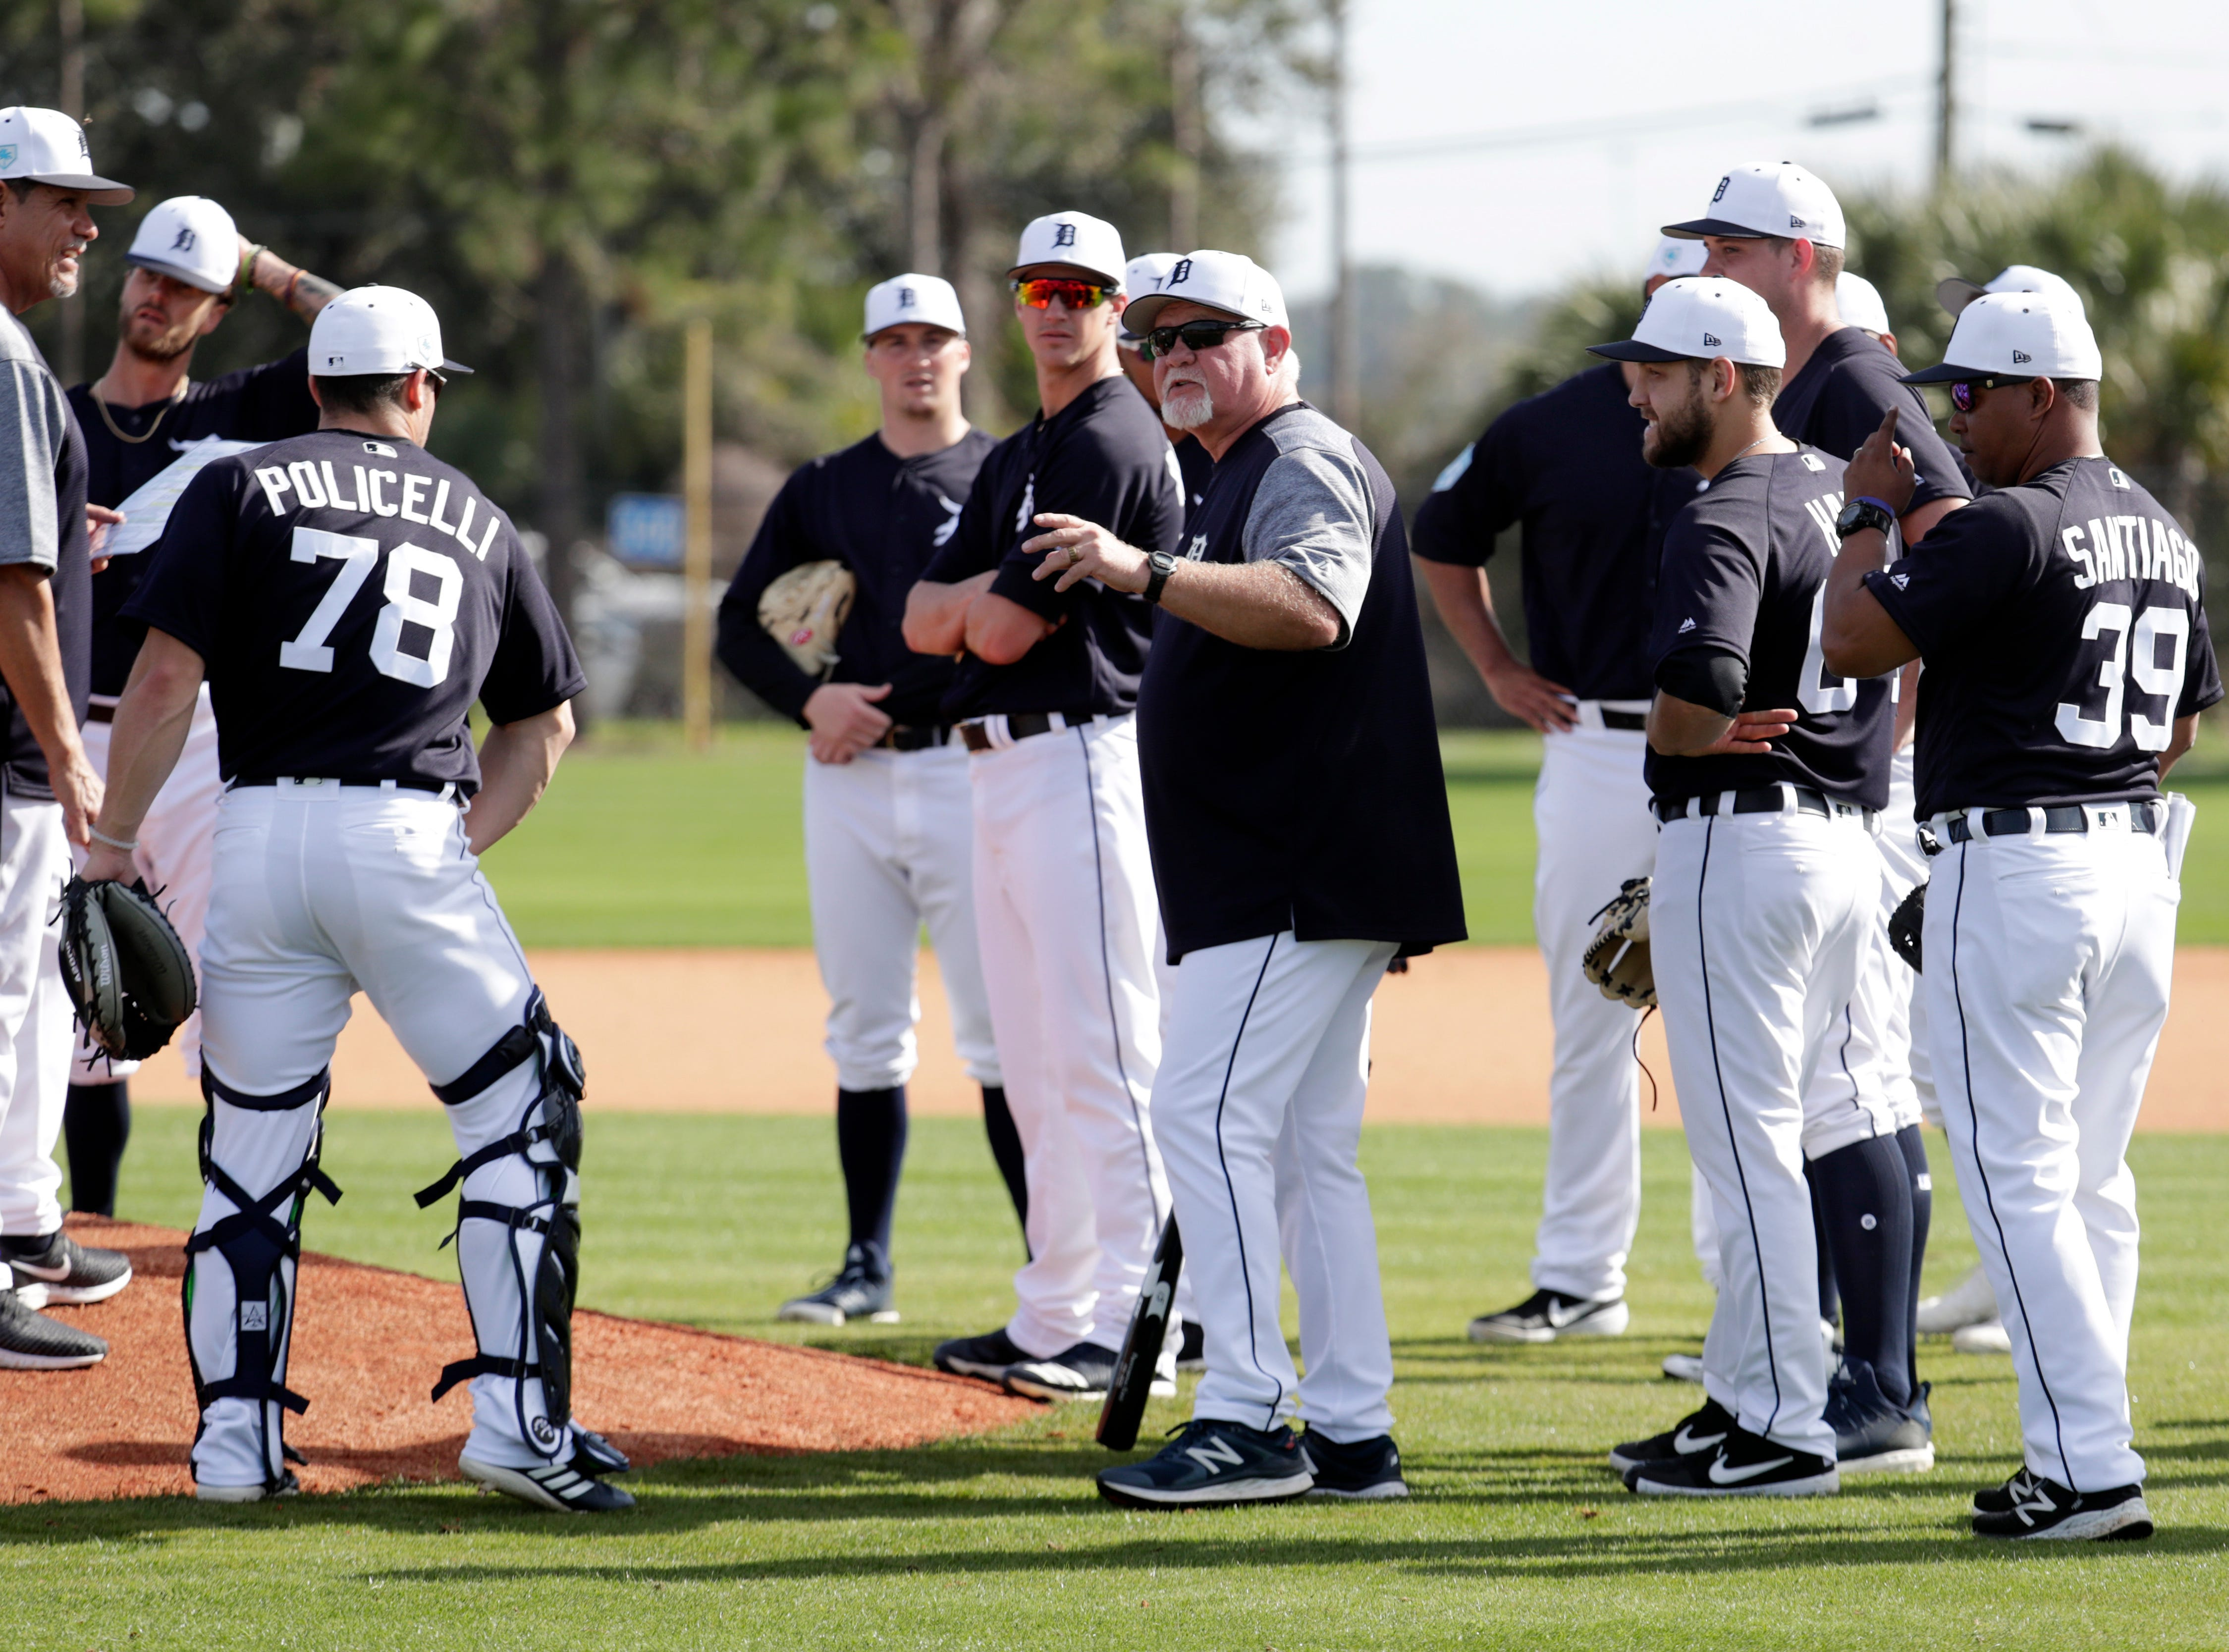 Detroit Tigers manager Ron Gardenhire, center, talks with his players at the Detroit Tigers spring training baseball facility, Friday, Feb. 15, 2019, in Lakeland, Fla.